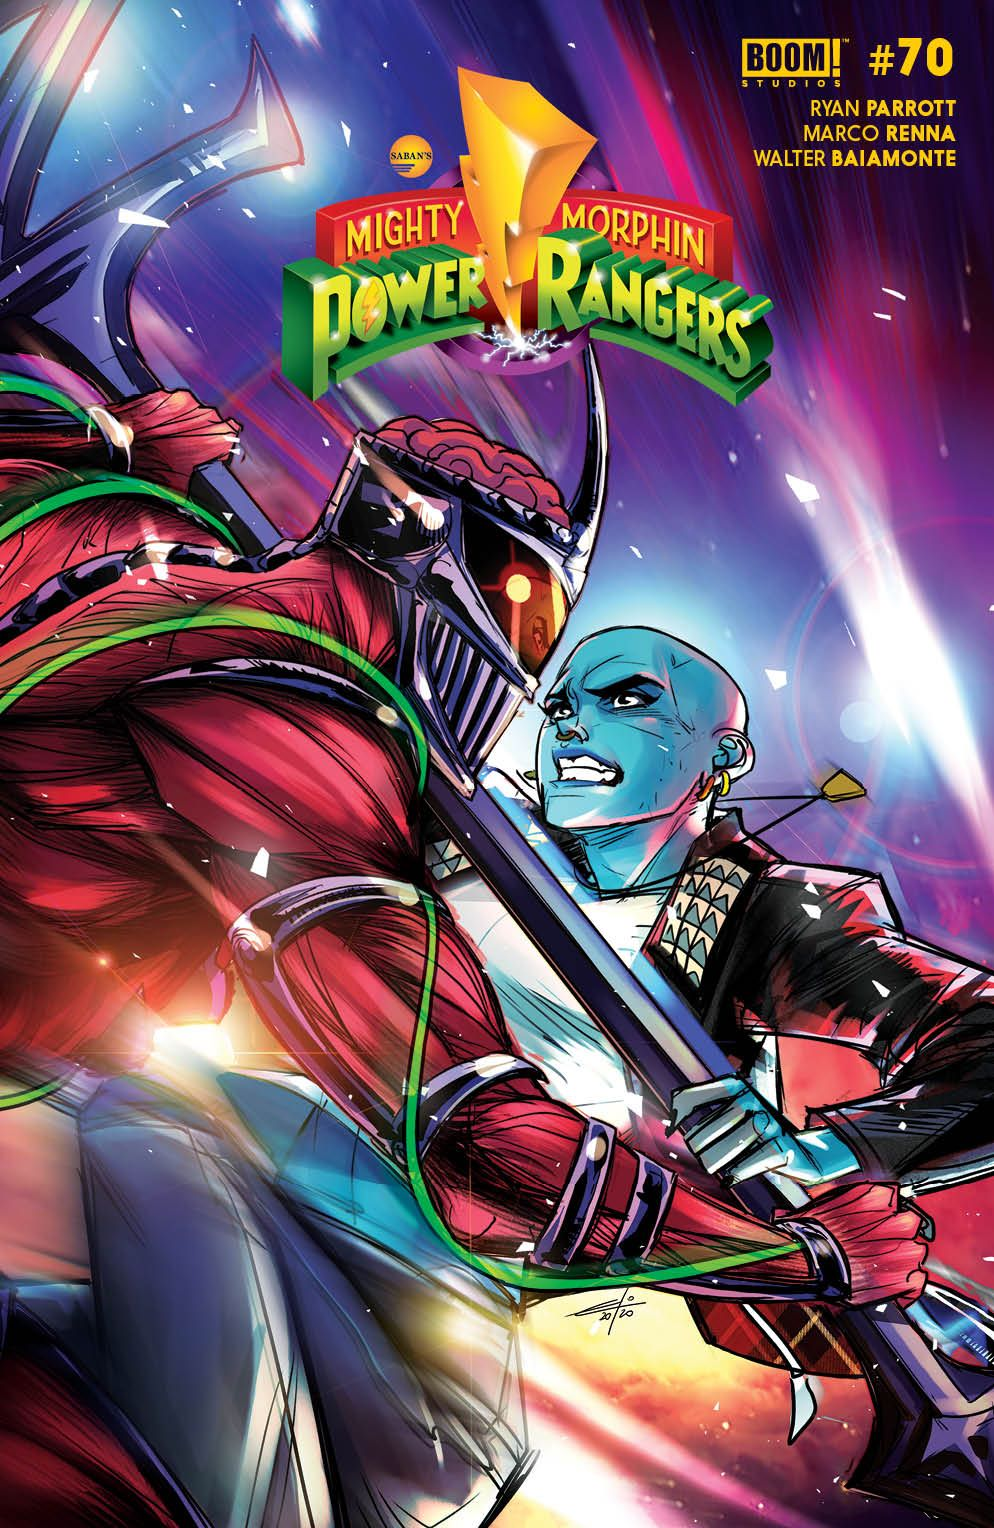 Mighty_Morphin_008_Cover_B_Legacy_Variant-1 ComicList: BOOM! Studios New Releases for 06/16/2021